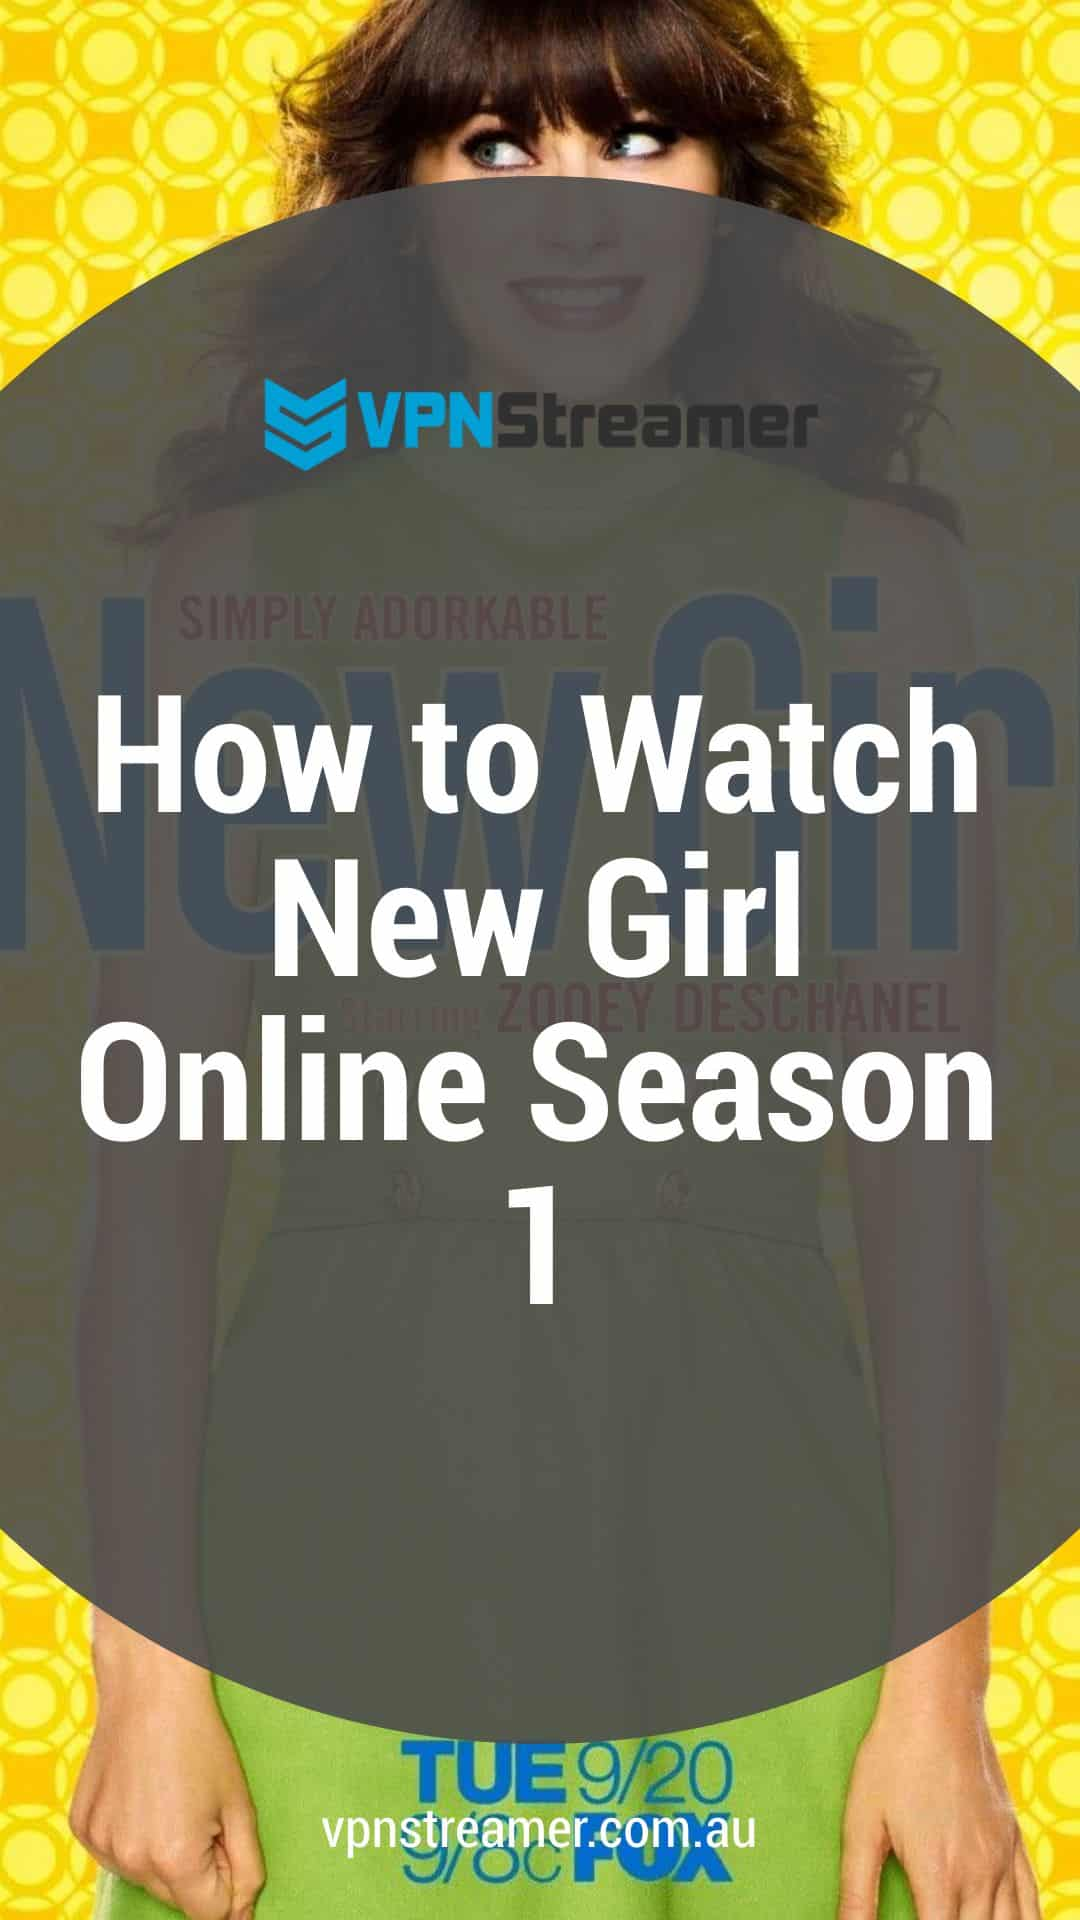 How to Watch New Girl Online season 1